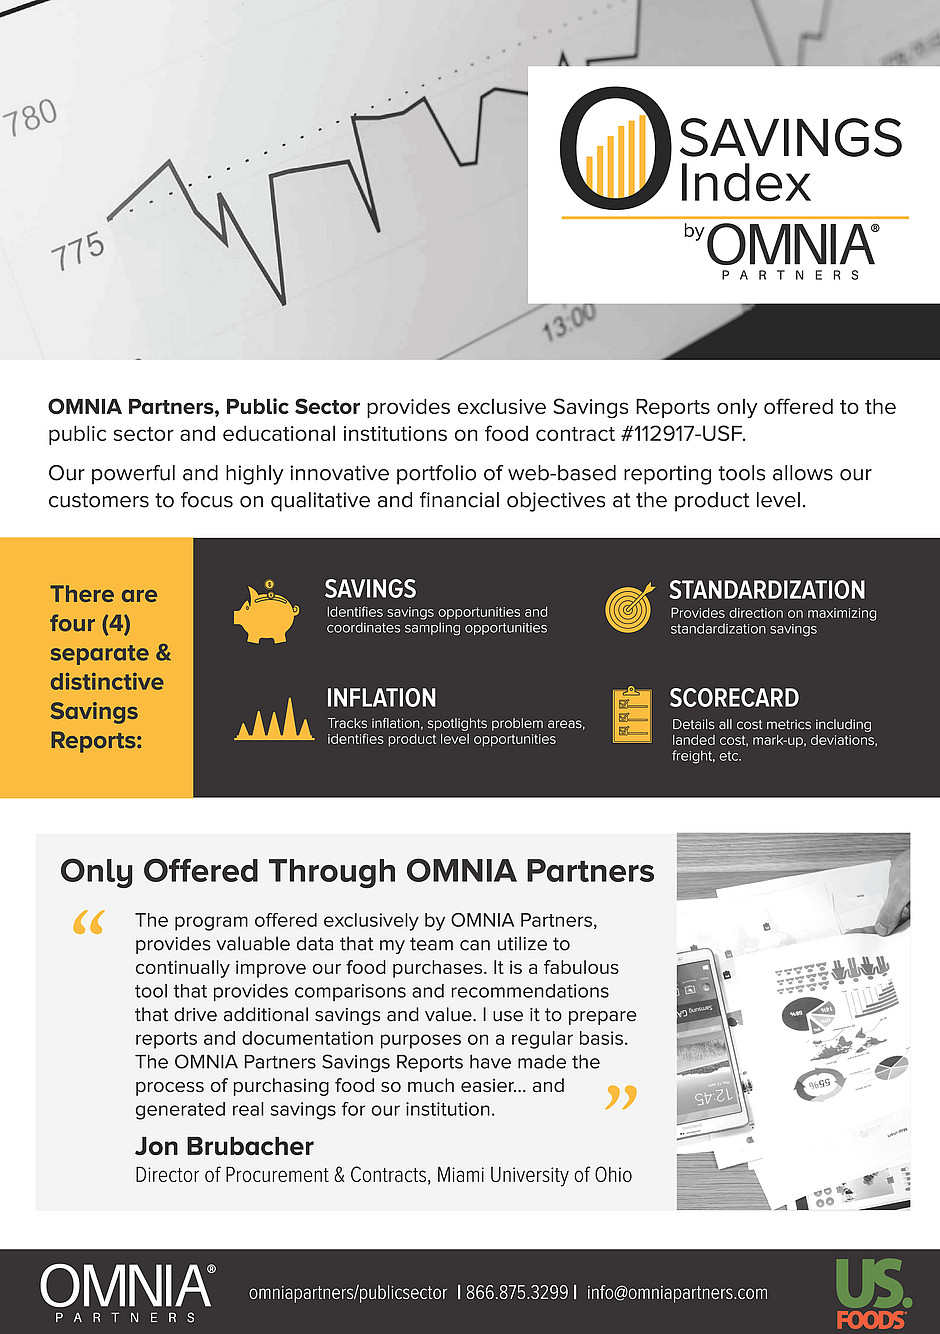 omnia partners savings index for us foods customers